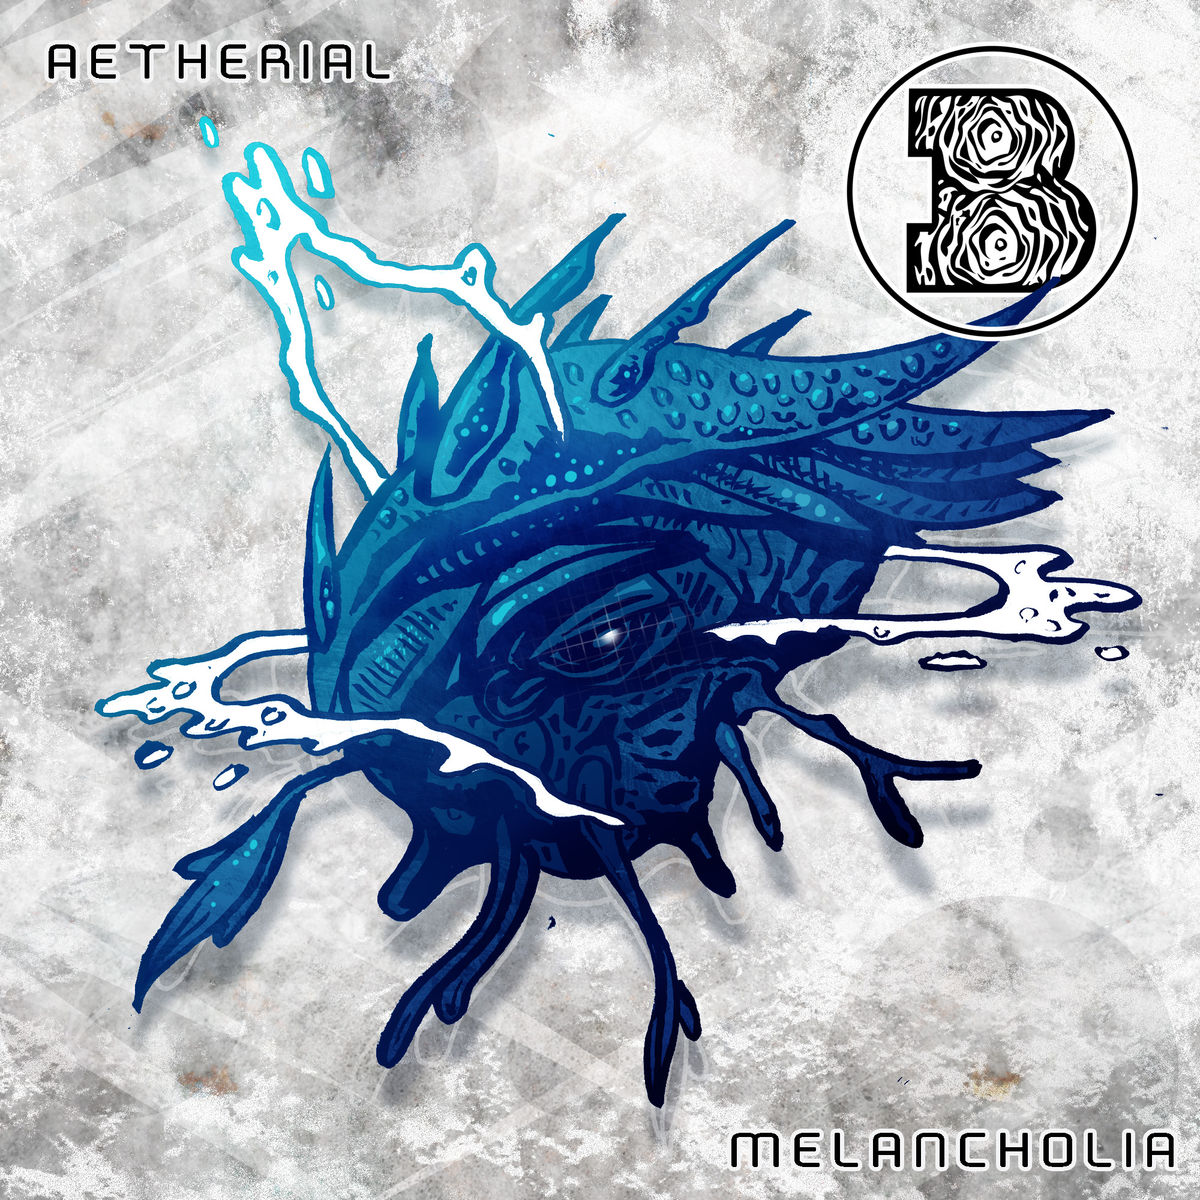 Aetherial - Only You (Original Mix)